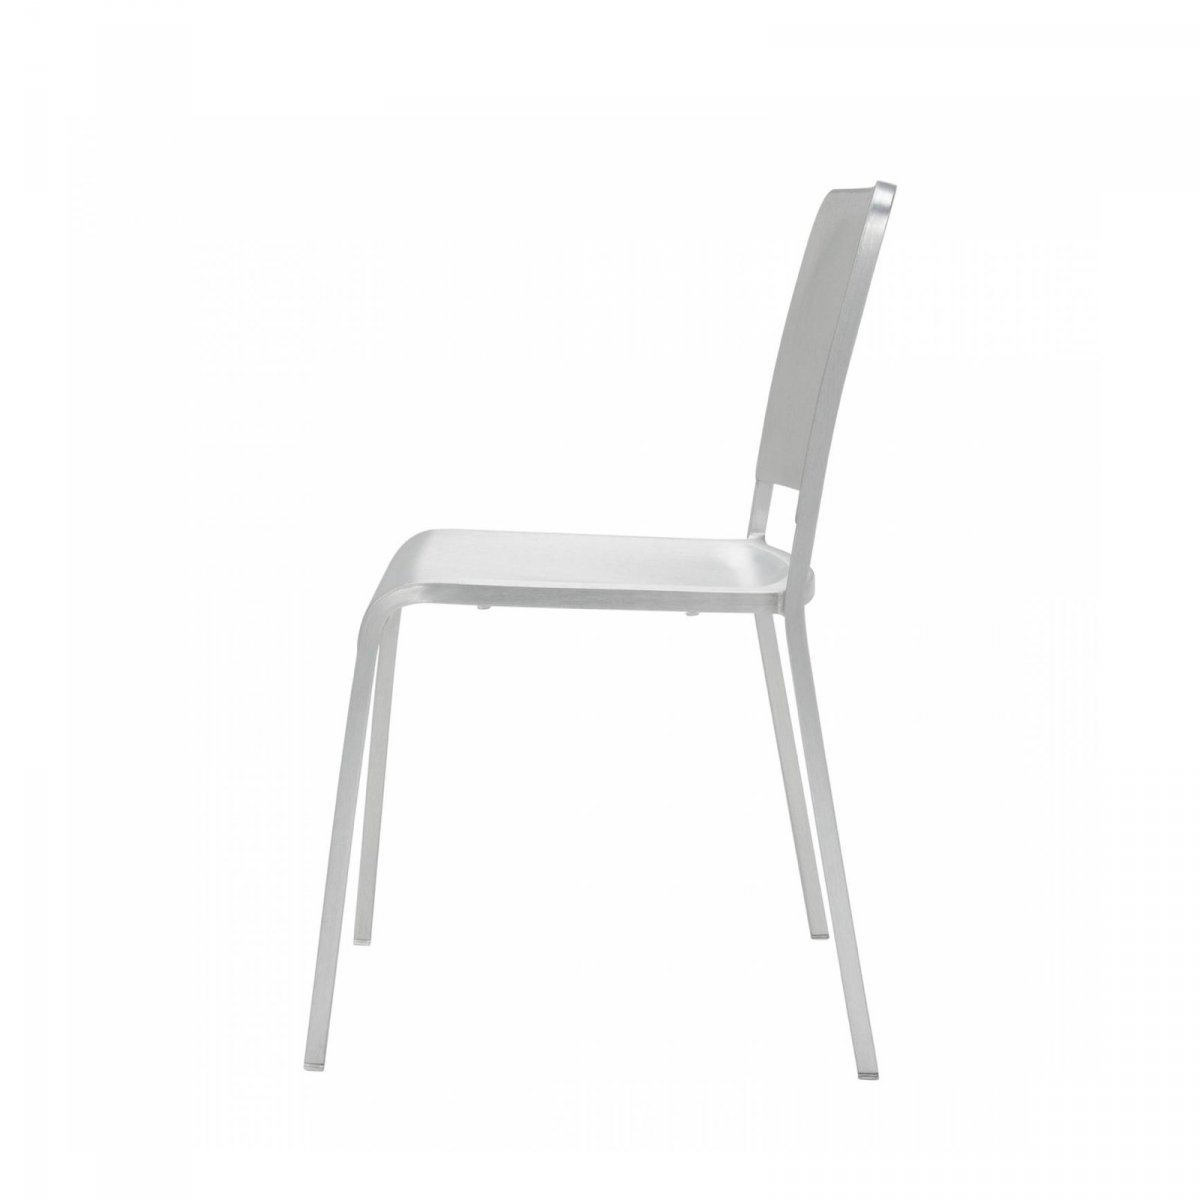 brushed aluminum chairs vinyl adirondack 20-06 stacking chair by foster + partners for emeco   up interiors